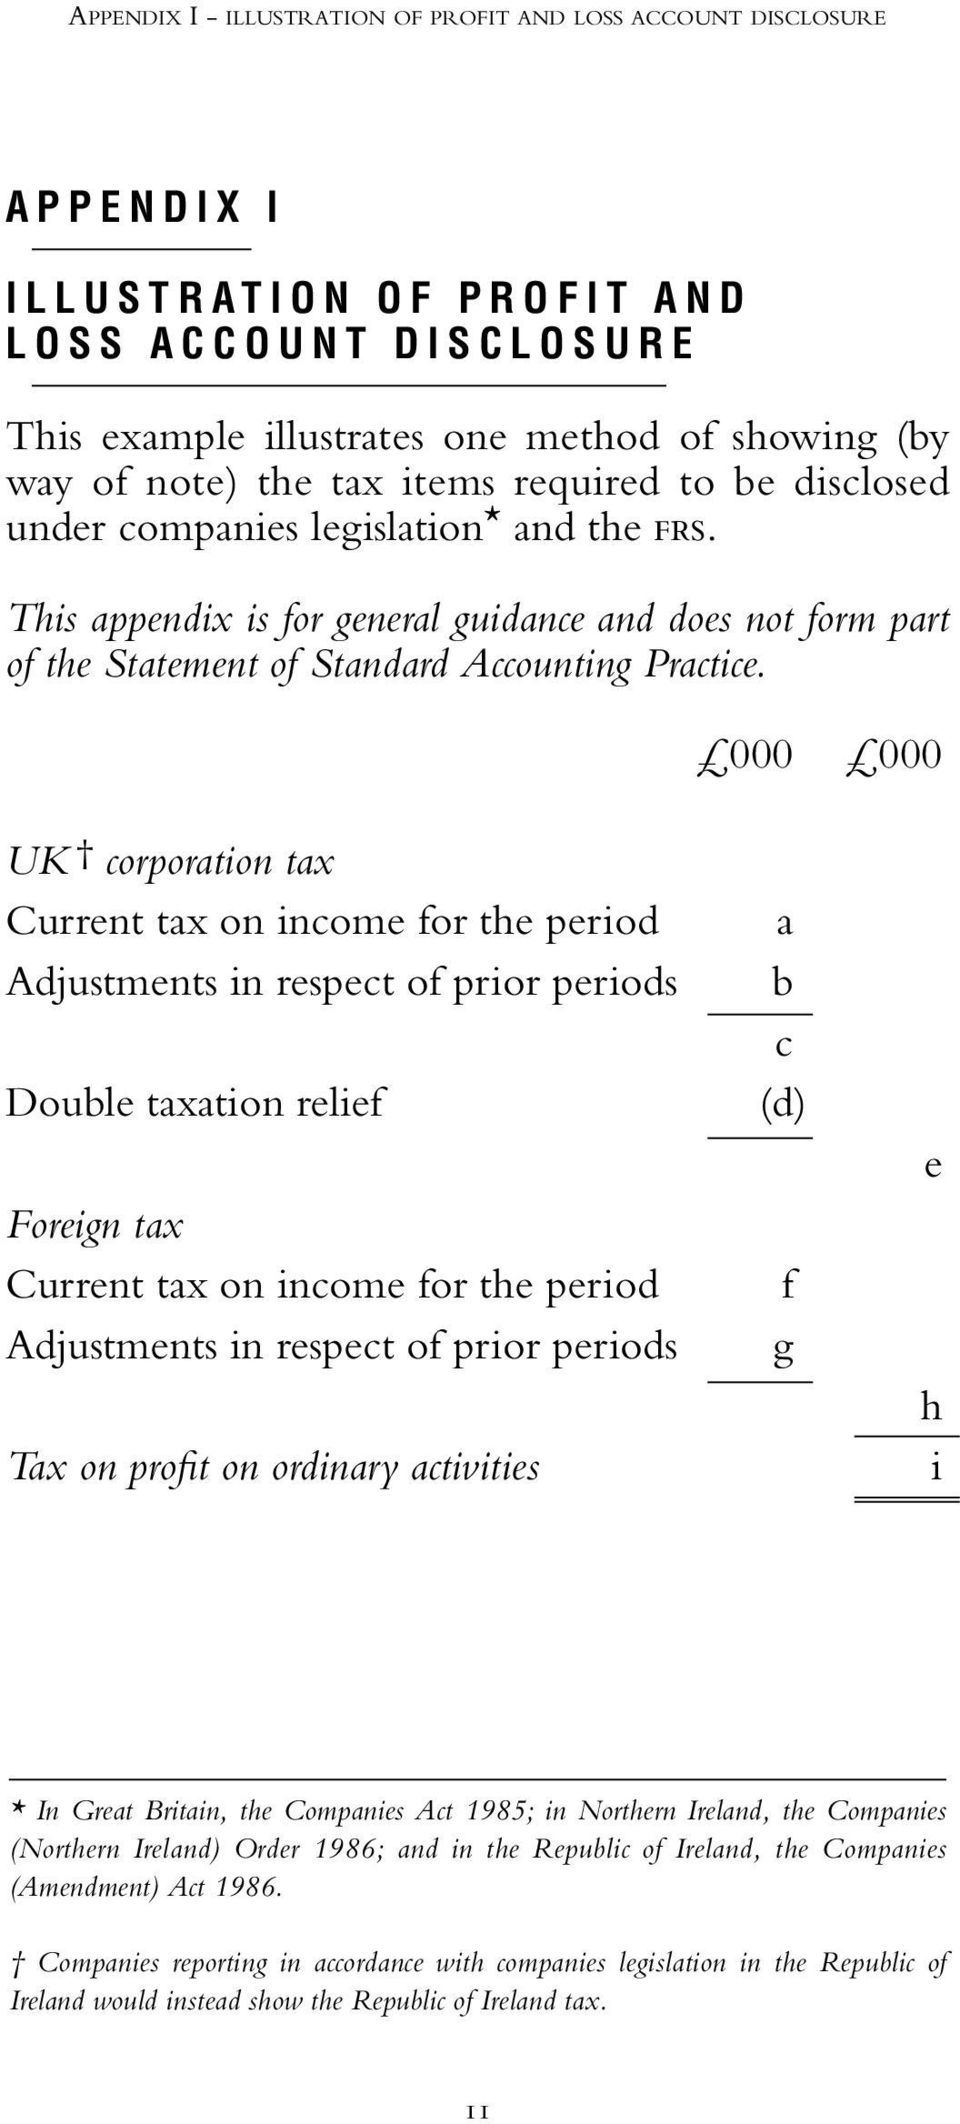 000 000 UK corporation tax Current tax on income for the period Adjustments in respect of prior periods Double taxation relief Foreign tax Current tax on income for the period Adjustments in respect